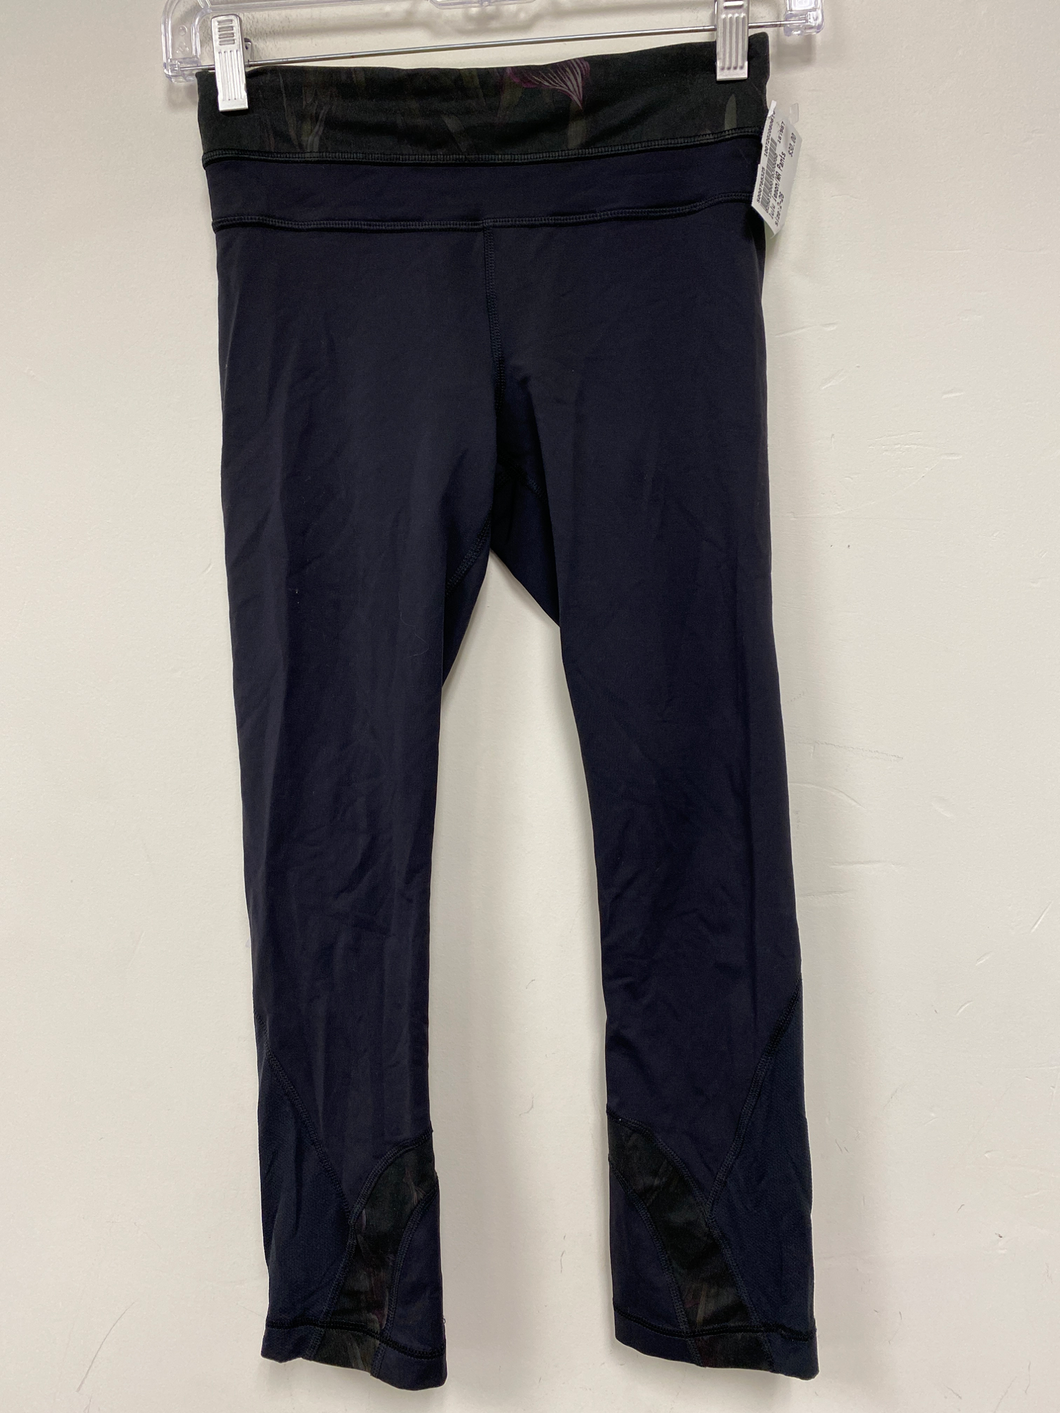 Lulu Lemon Cropped Athletic Pants Size 2 (26)